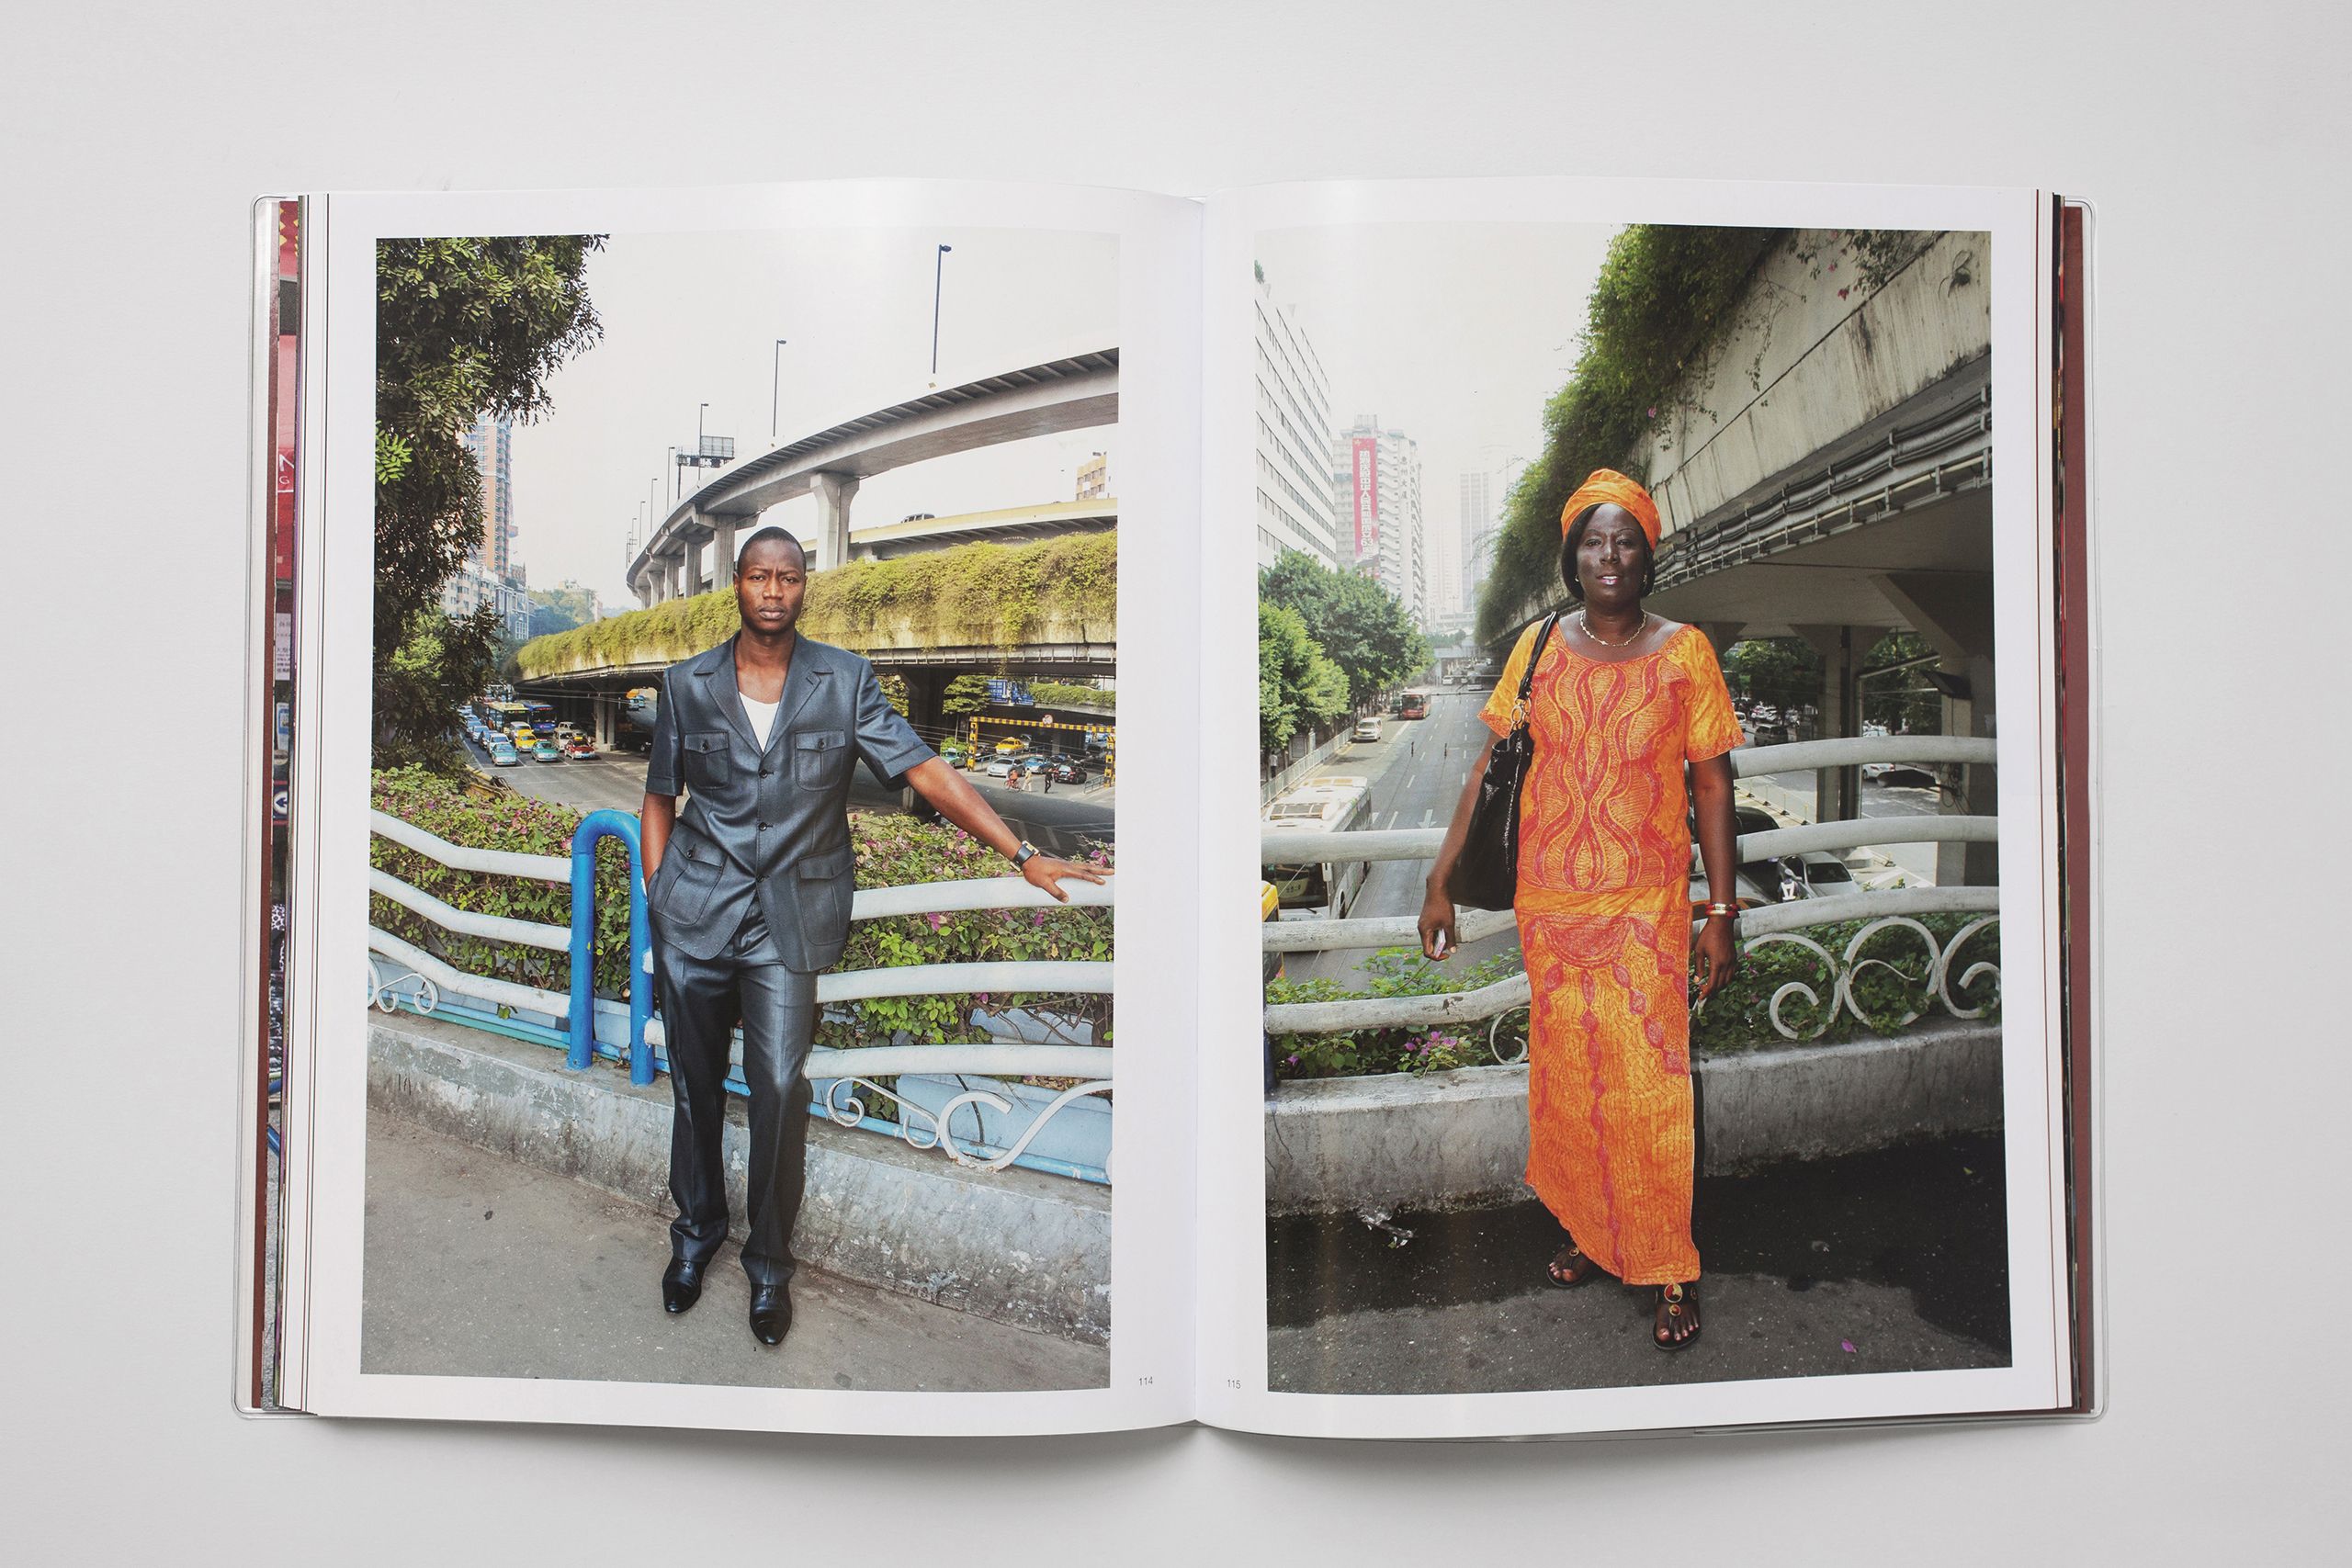 Selected by photographer Martin Parr:  On a bridge in Guangzhou, Daniel Traub encountered a Chinese photographer who specialized in taking portraits of Africans living in the city. Intrigued by this surreal combination, he photographed the surrounding streets and activity. In the book, he added folios of the portraits taken by Wu Yong Fu and Zeng Xian Fang, his collaborator. This, together with an interview with the photographers, contributes to one of the most surprising and engaging books of the year.""